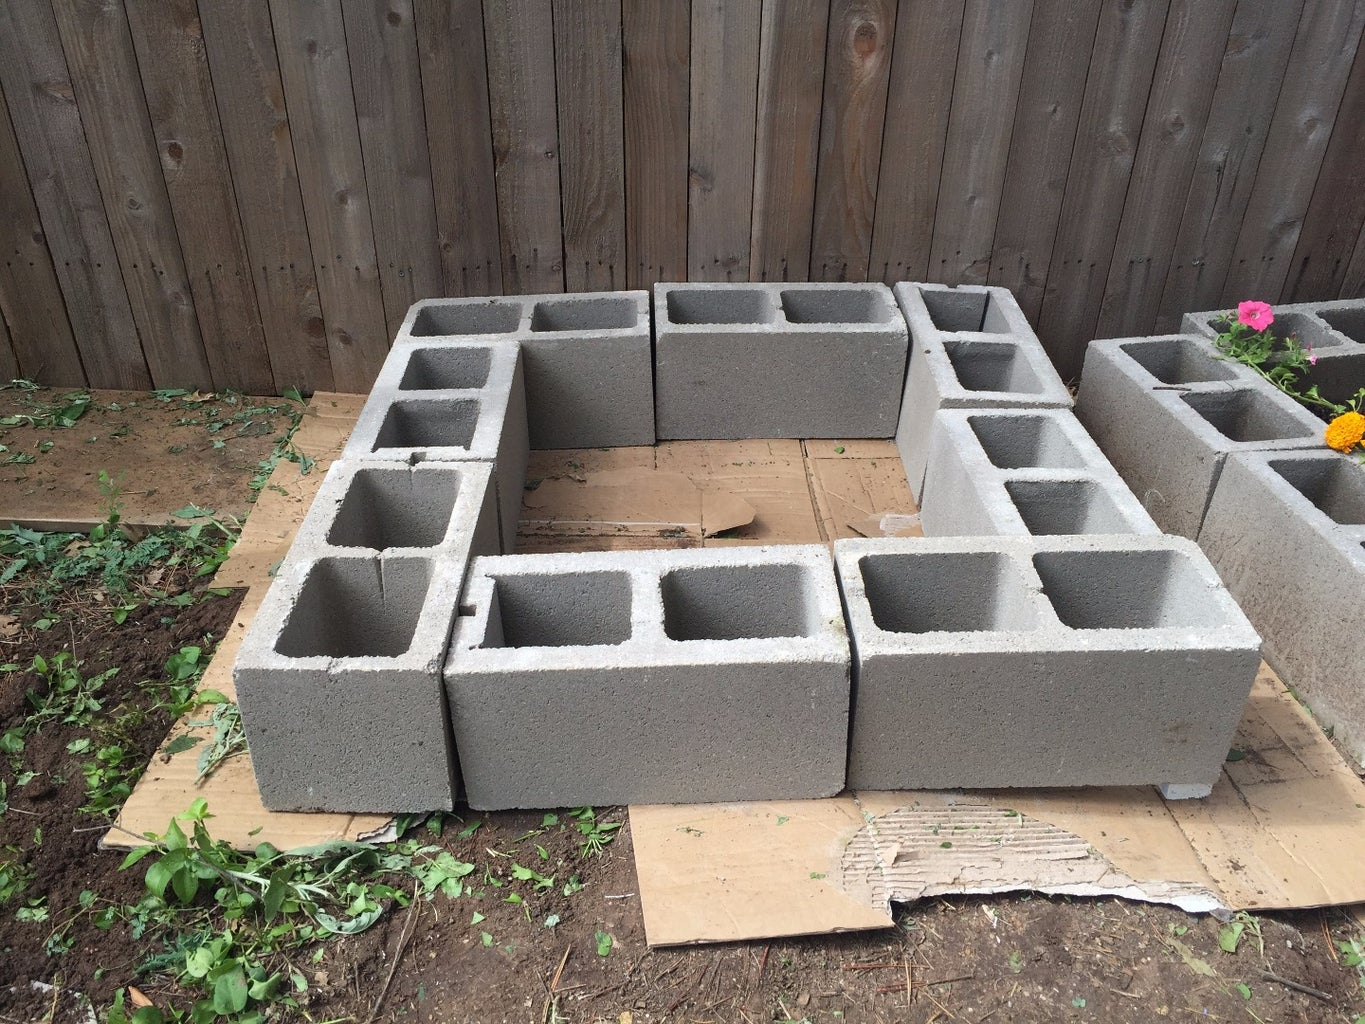 Lay Out Cinder Blocks